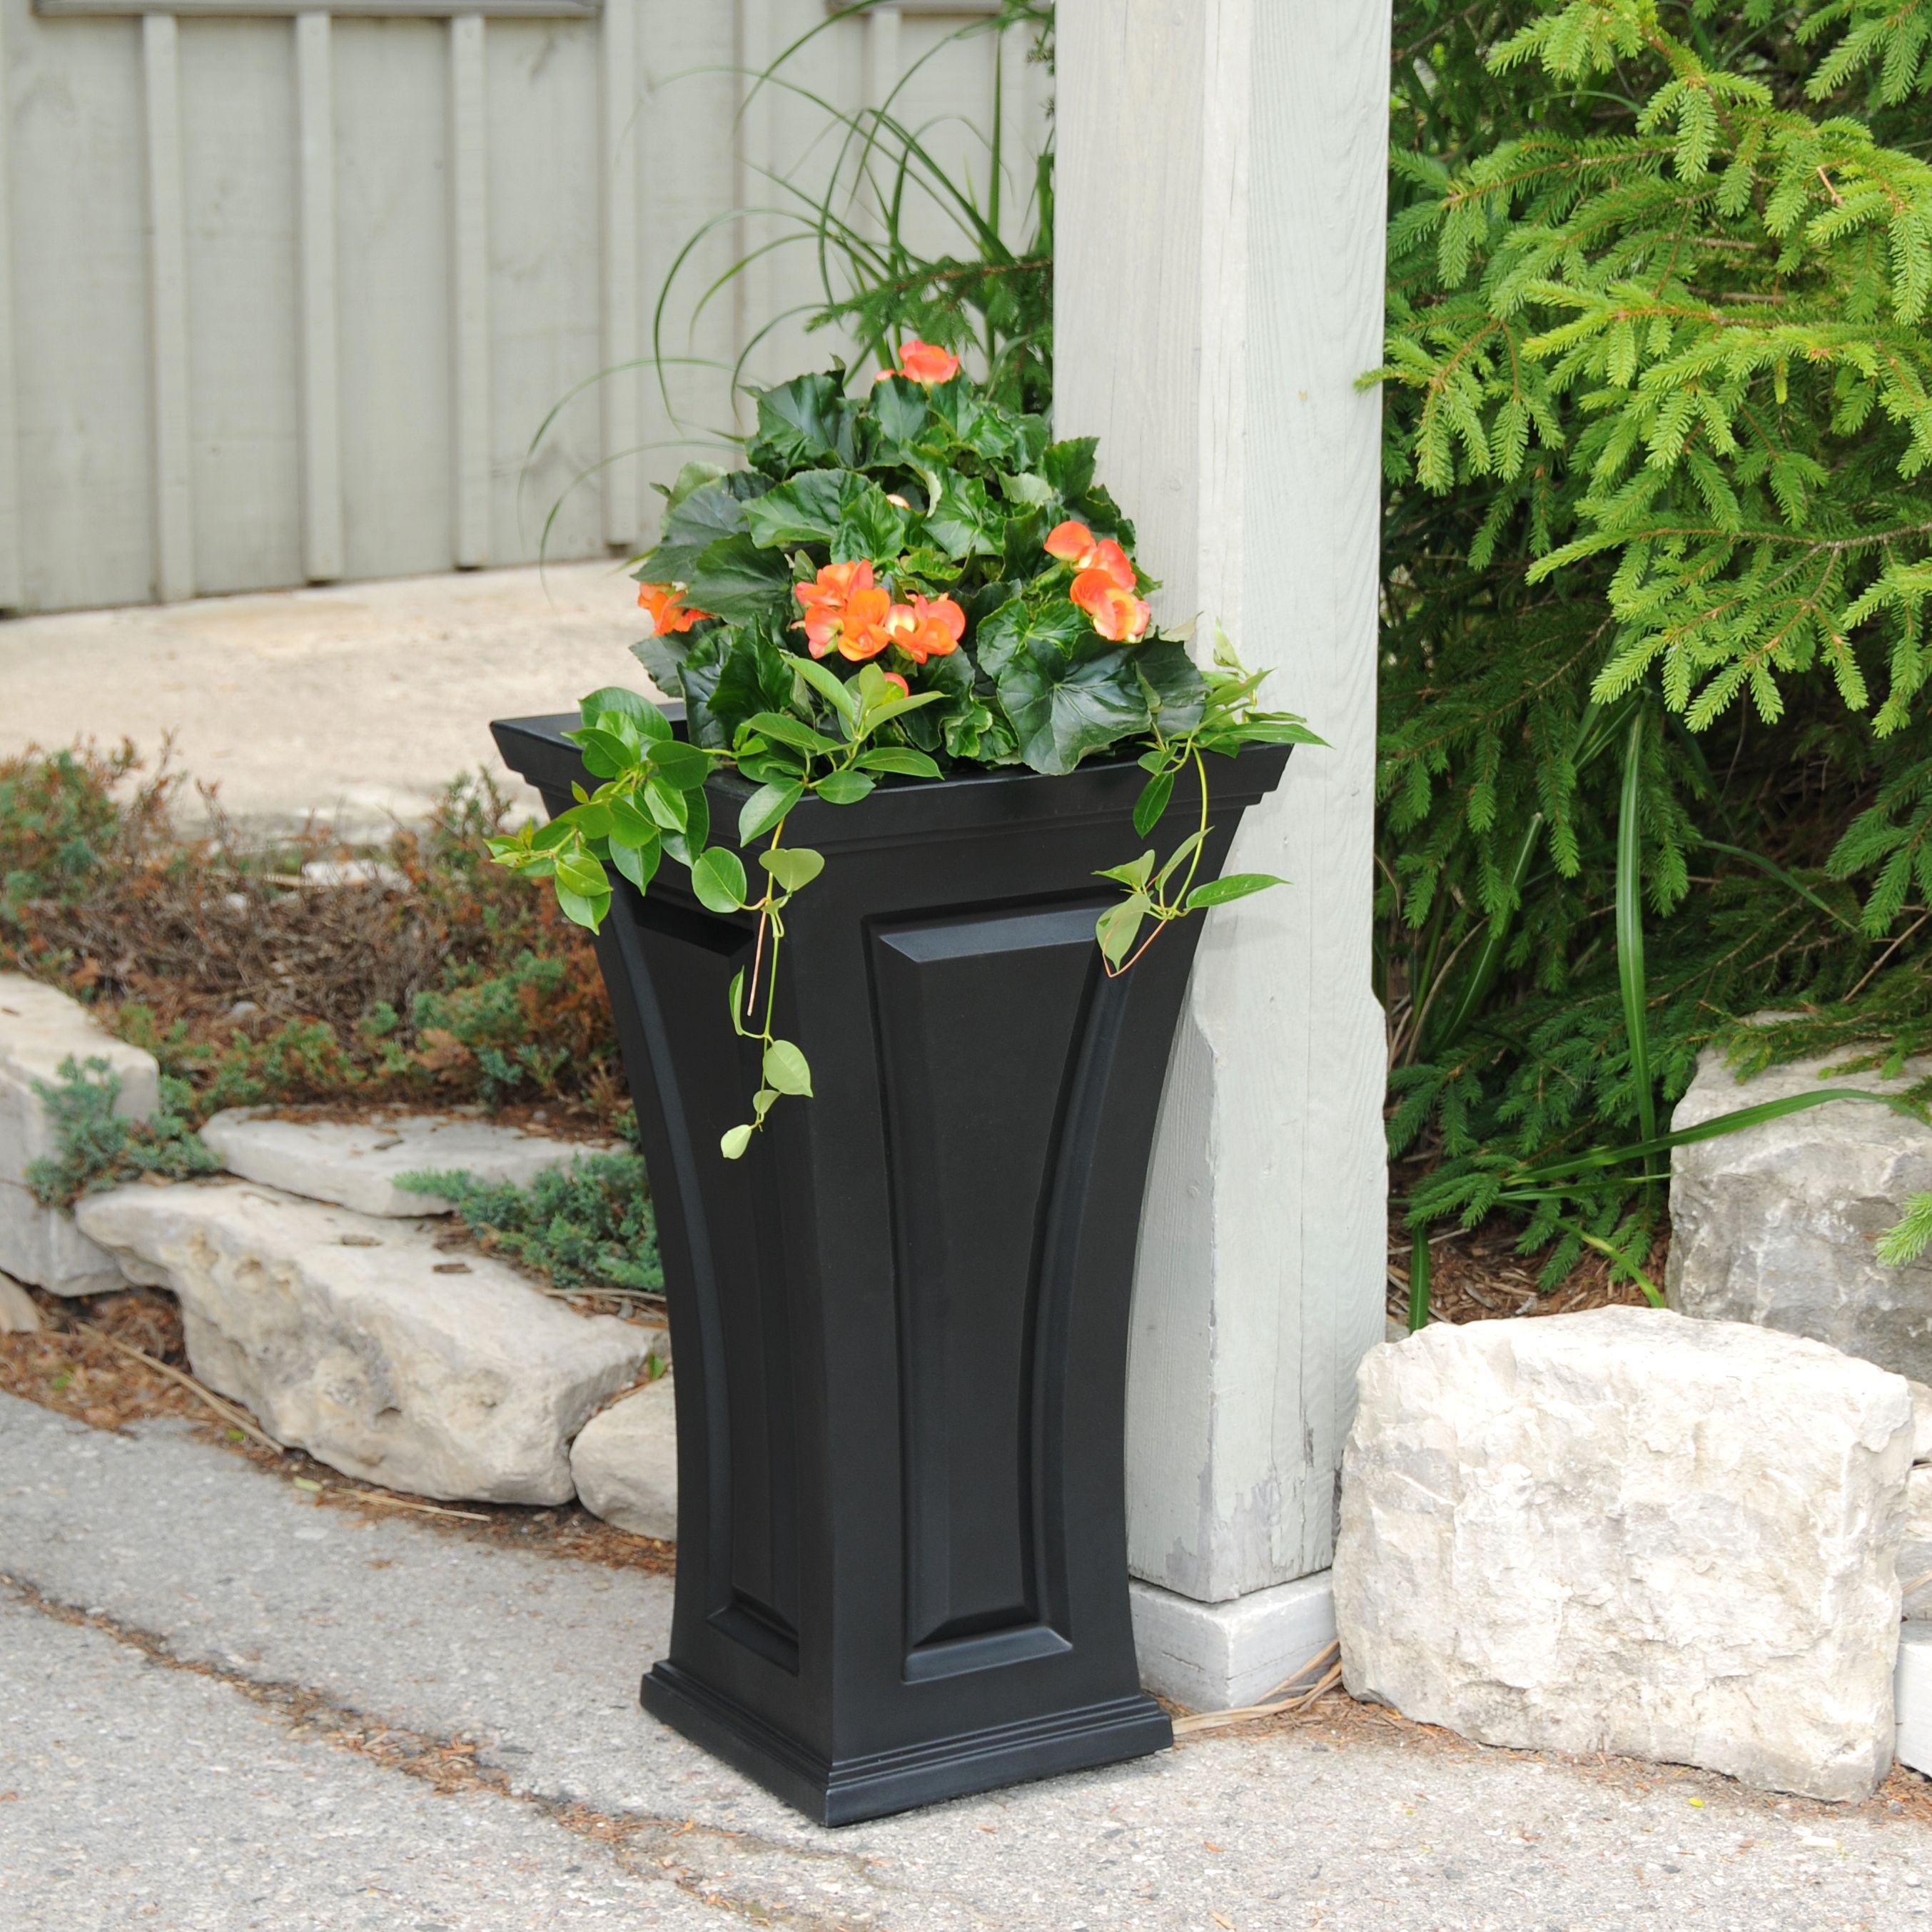 Cambridge Tall Planter Black by Mayne Inc.